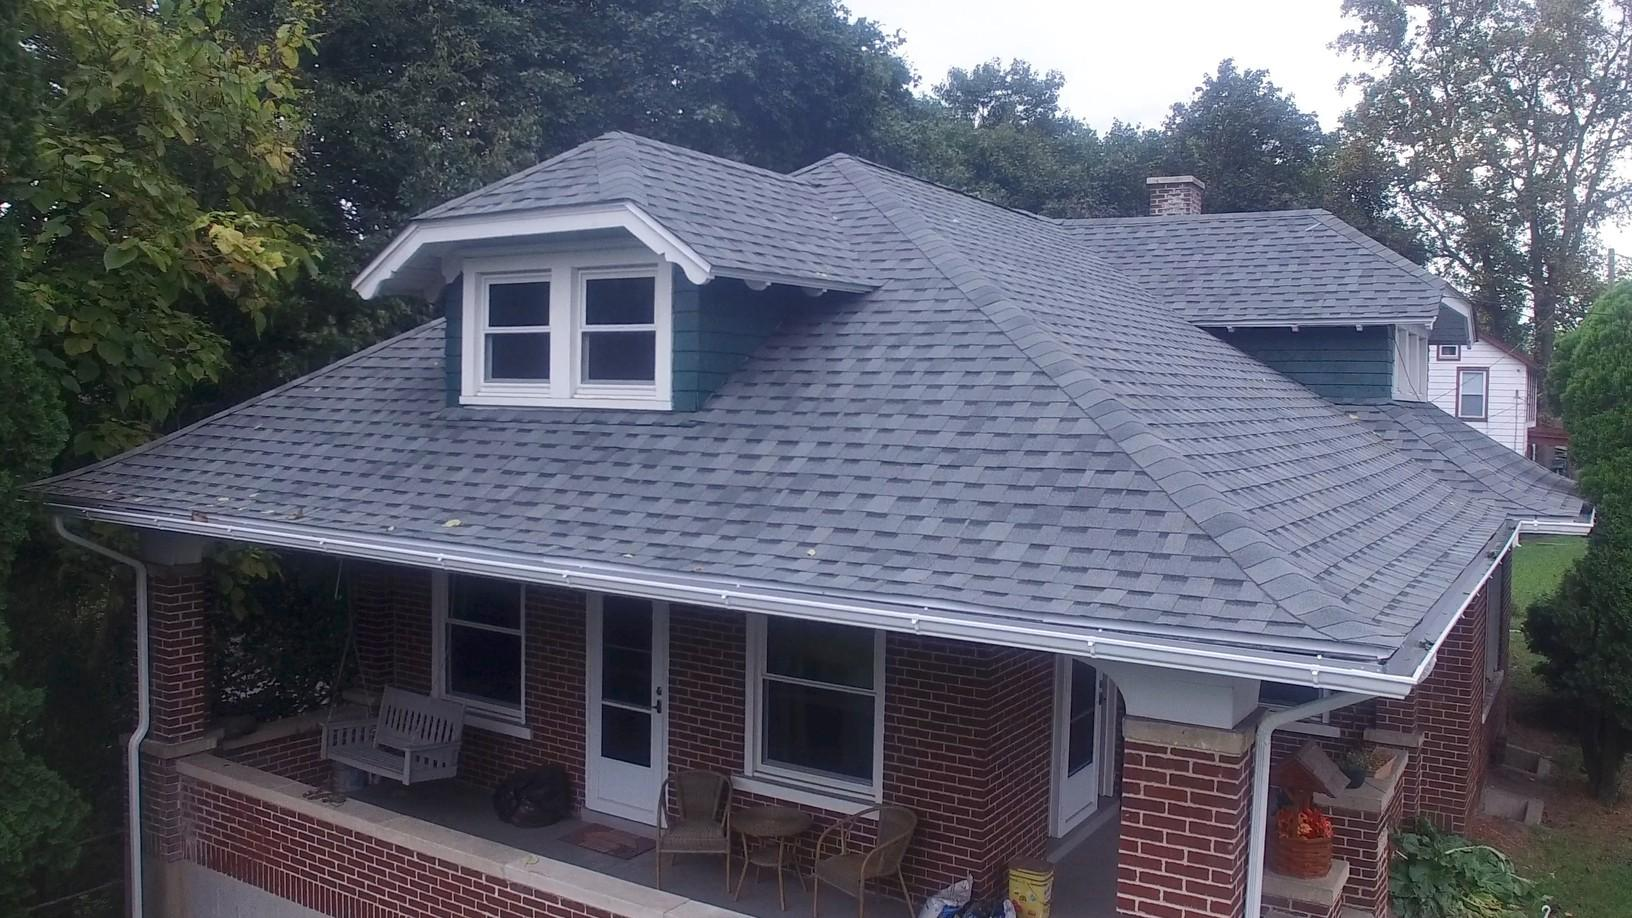 An Upgrade to Architectural Shingles in Walnutport, Pennsylvania - After Photo